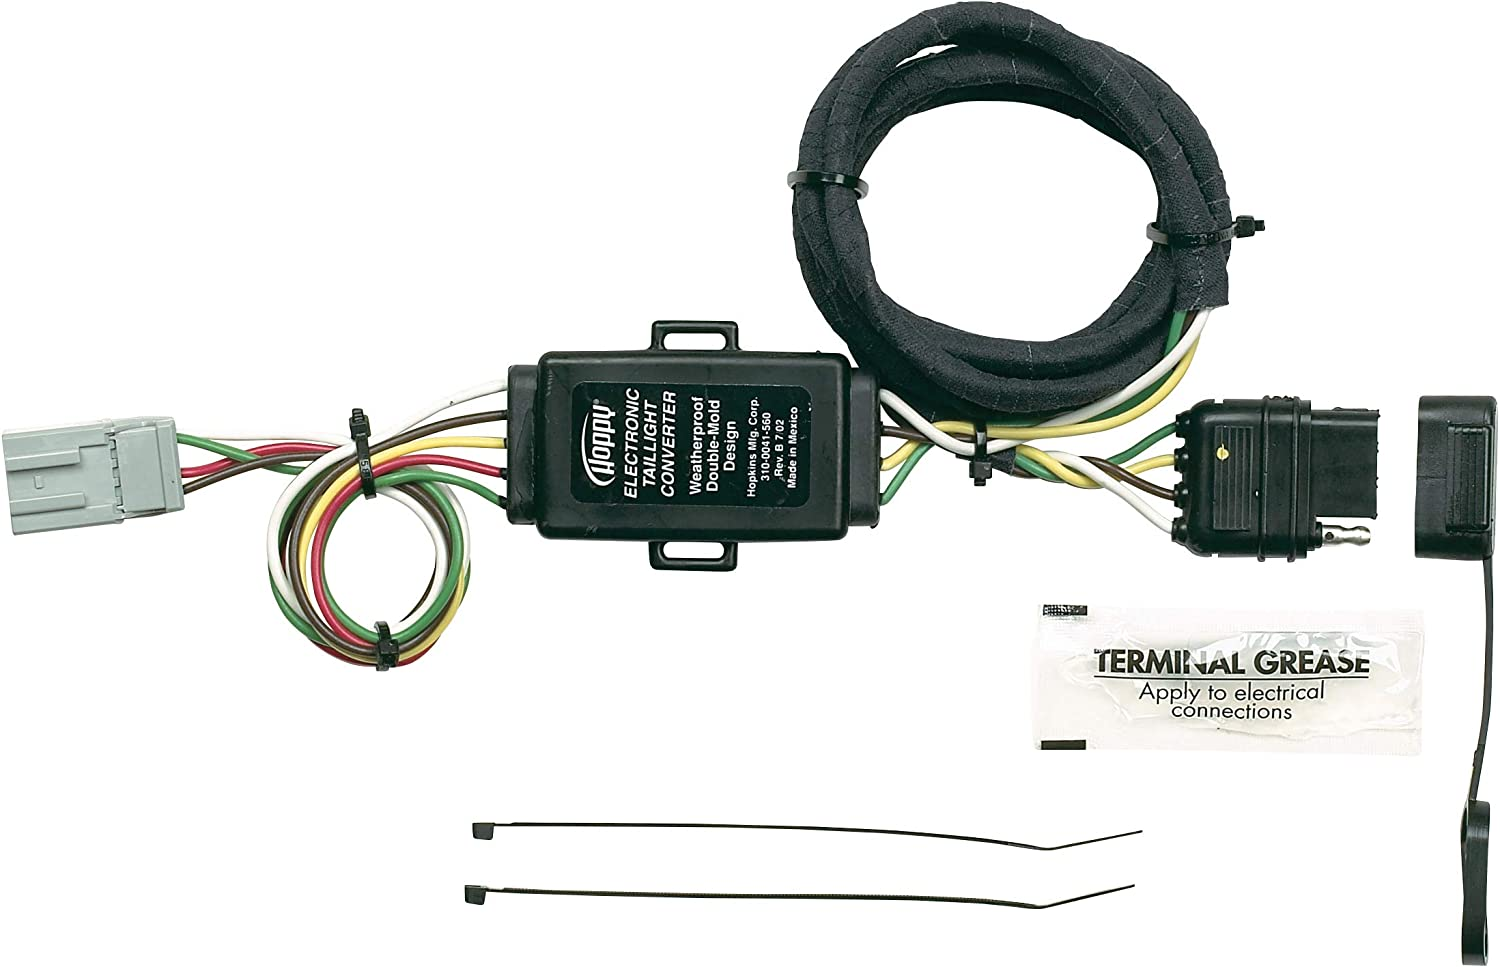 Amazon.com: Hopkins 43105 Plug-In Simple Vehicle Wiring Kit: AutomotiveAmazon.com